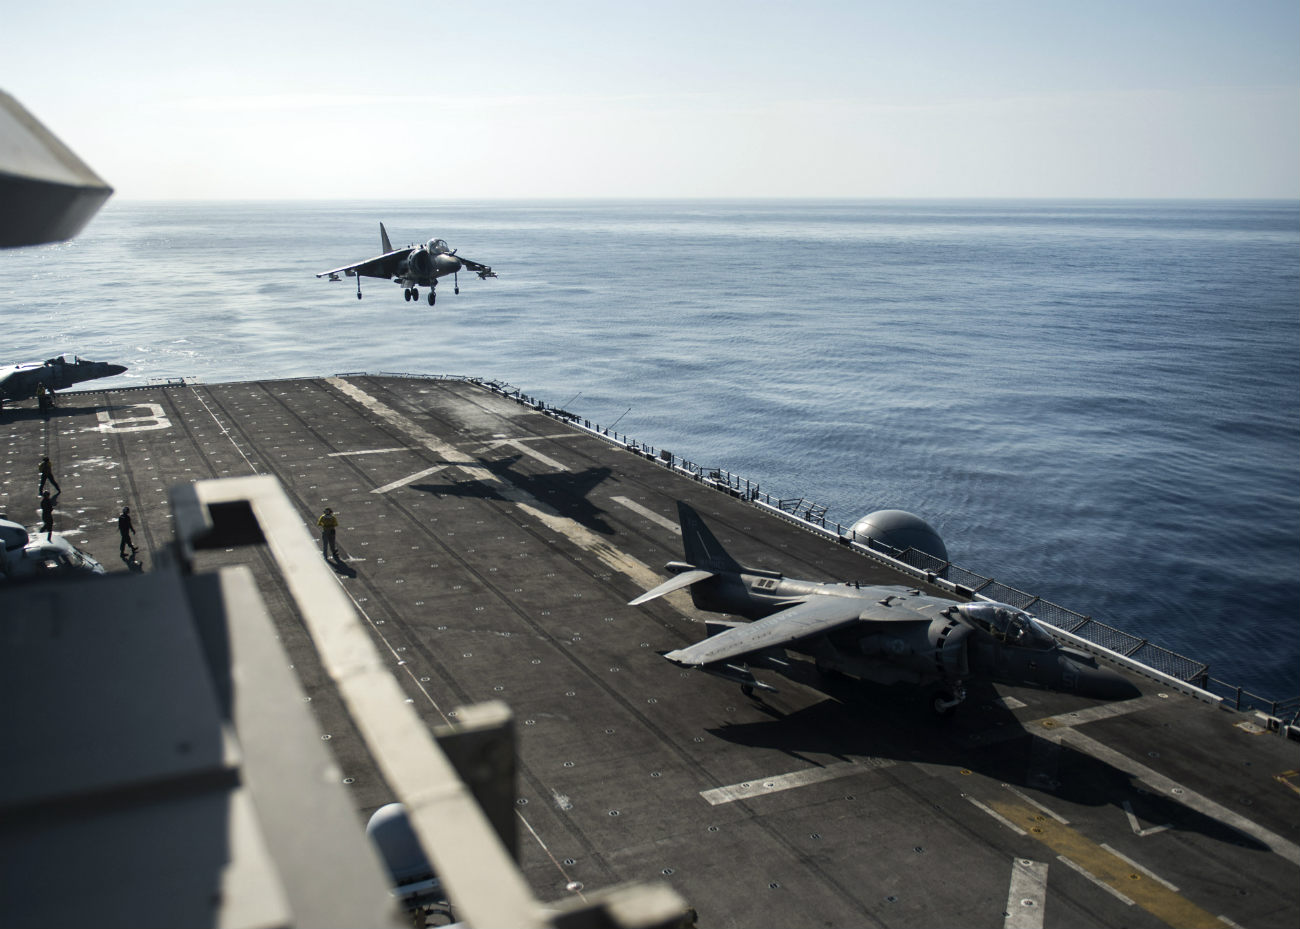 Harrier Aircraft on carrier